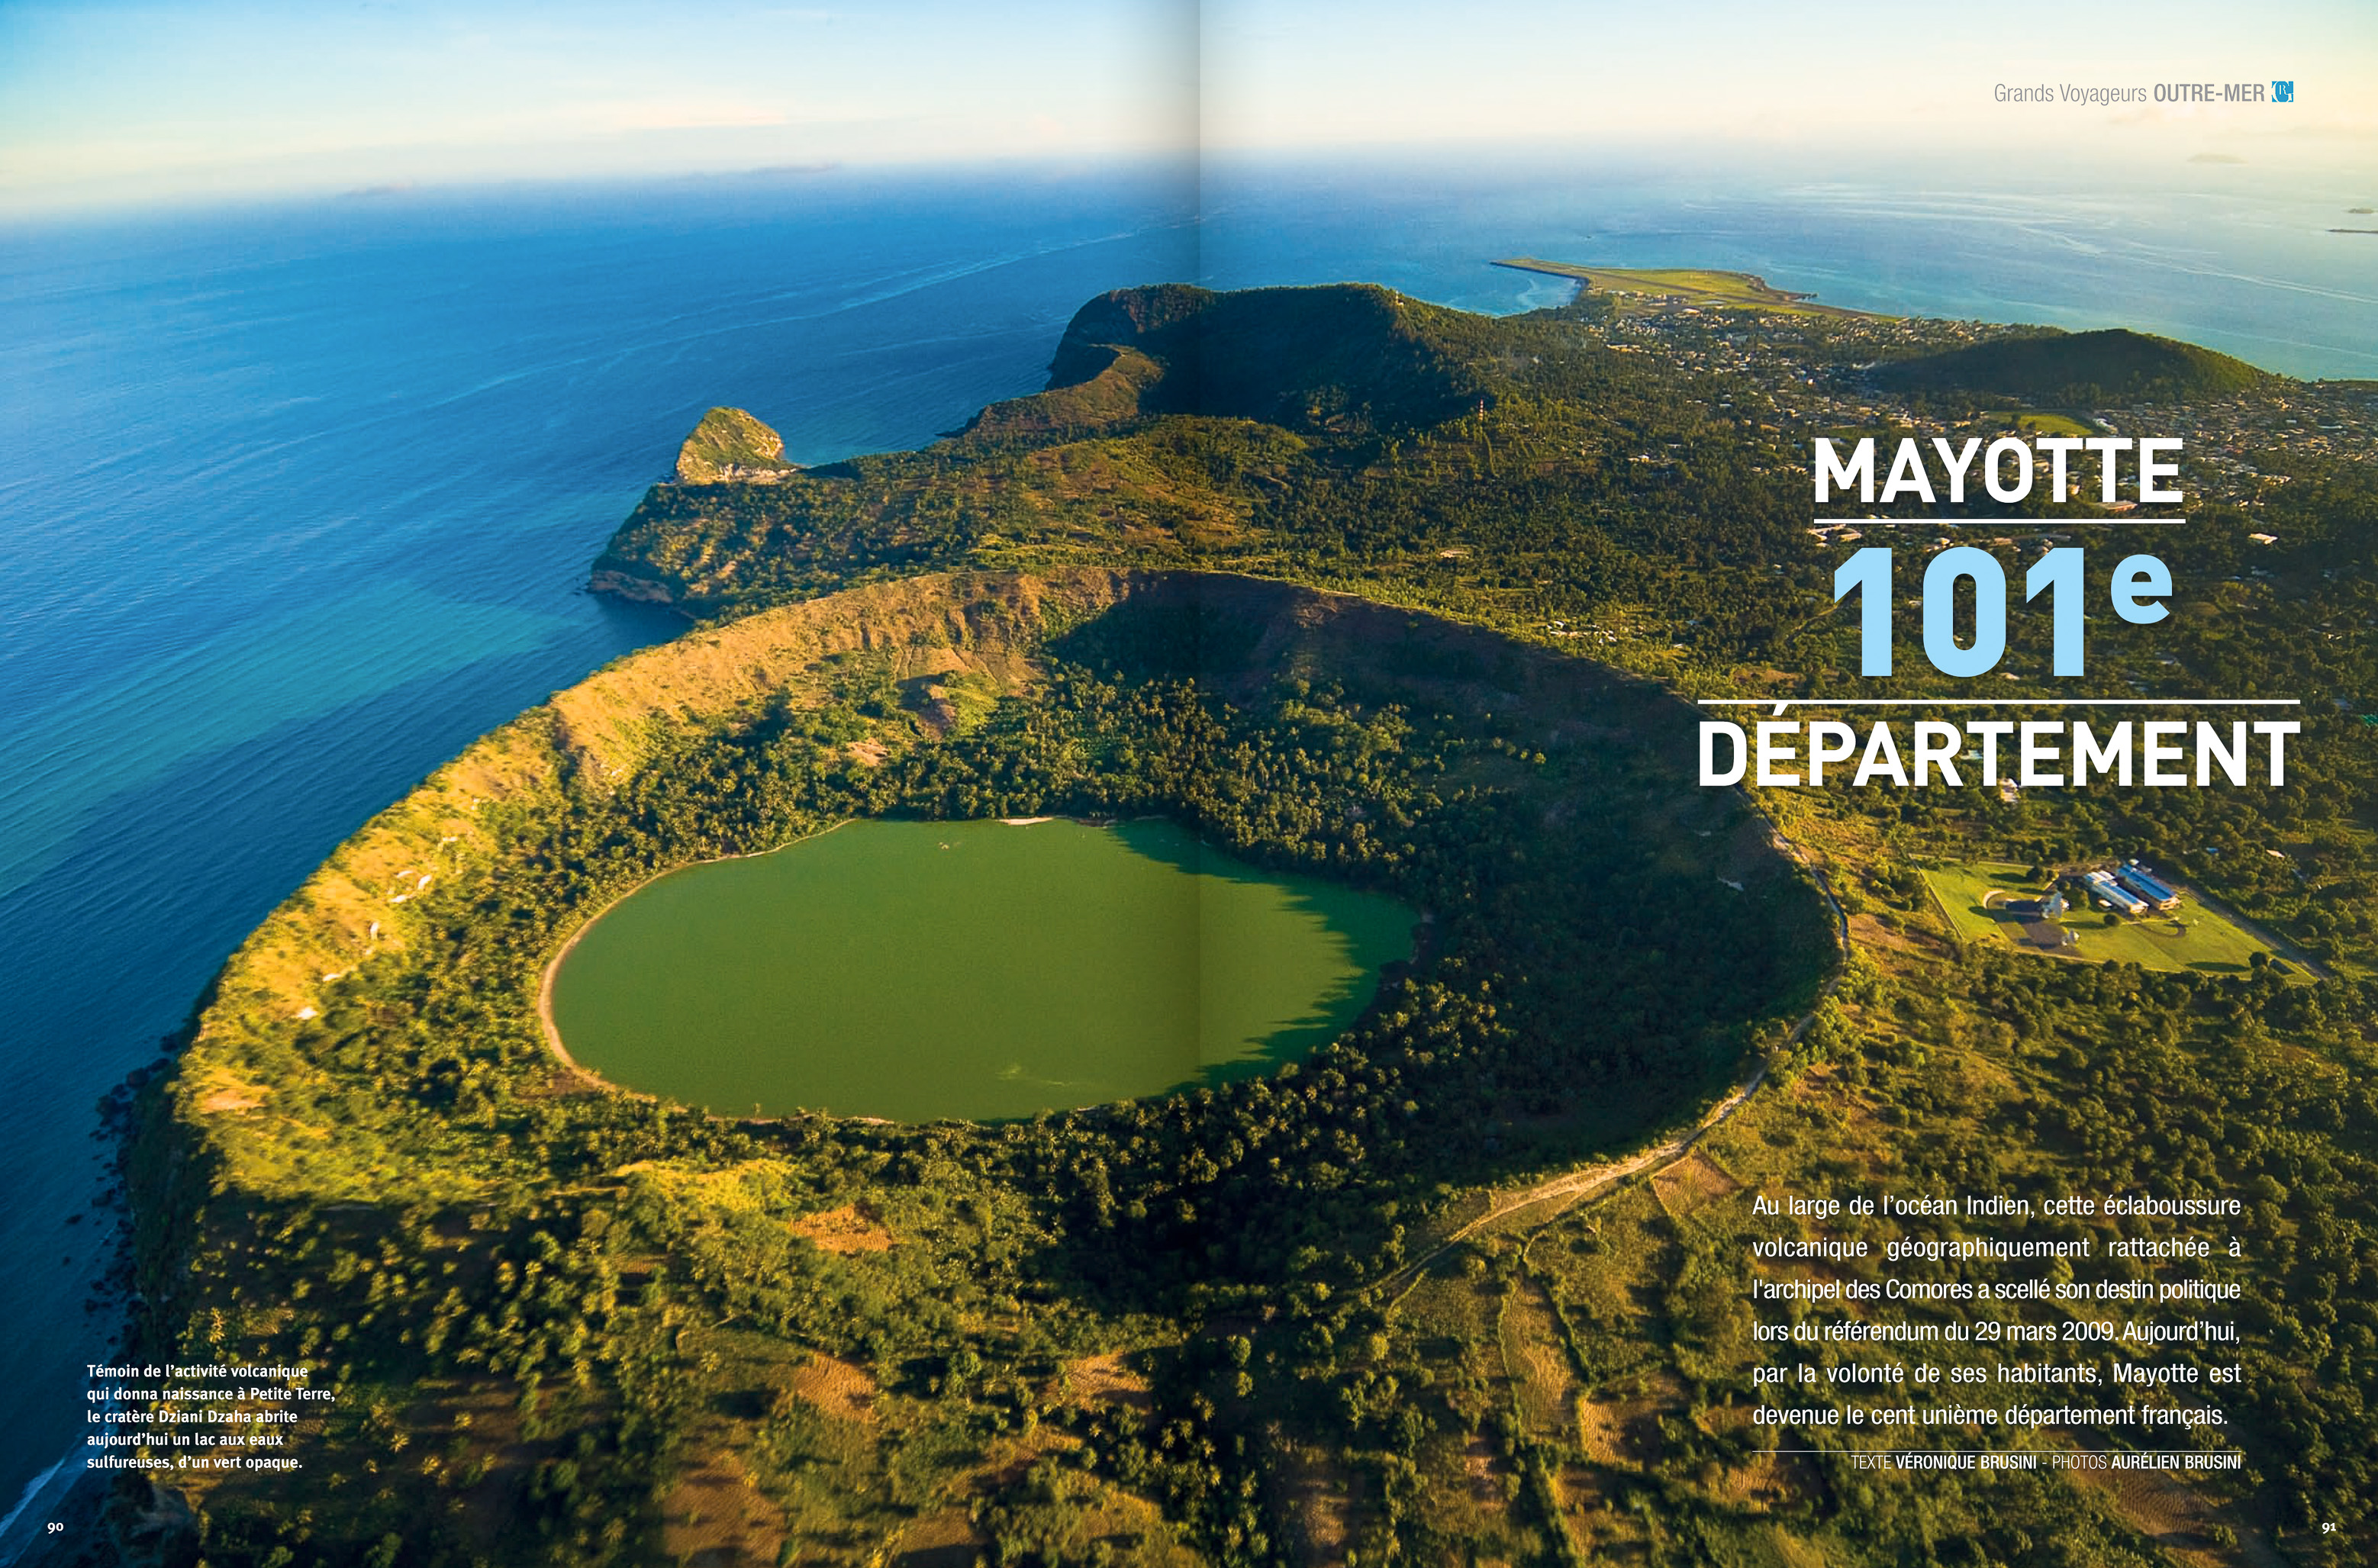 R e p o r t a g e m a y o t t e g r a n d s r e p o for Reportage mayotte